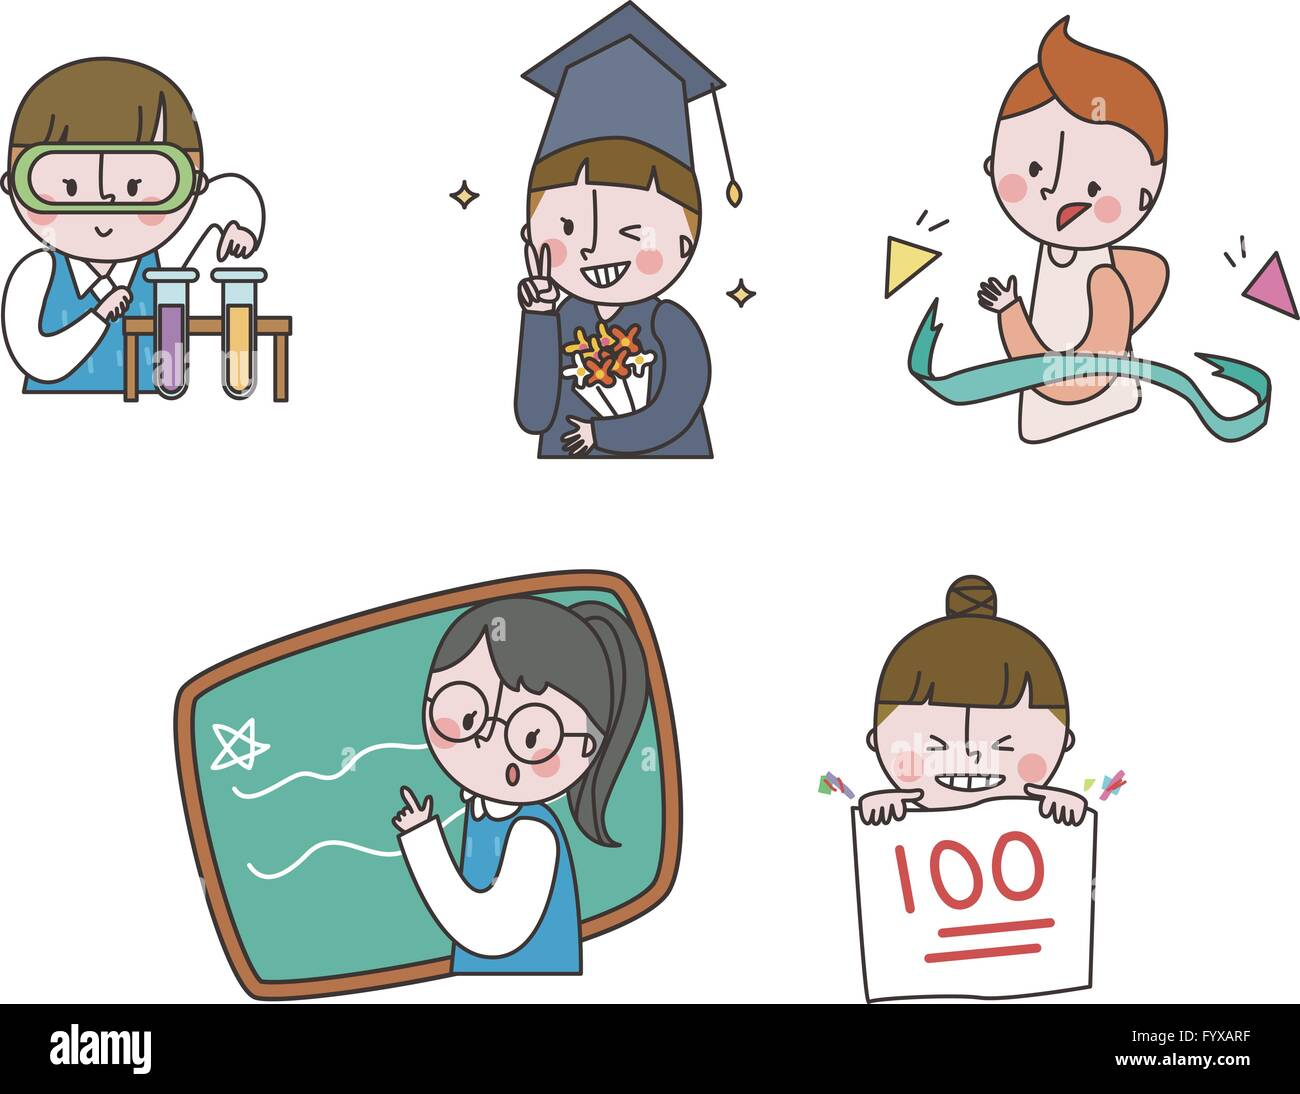 Job emoticons 002 - Stock Image